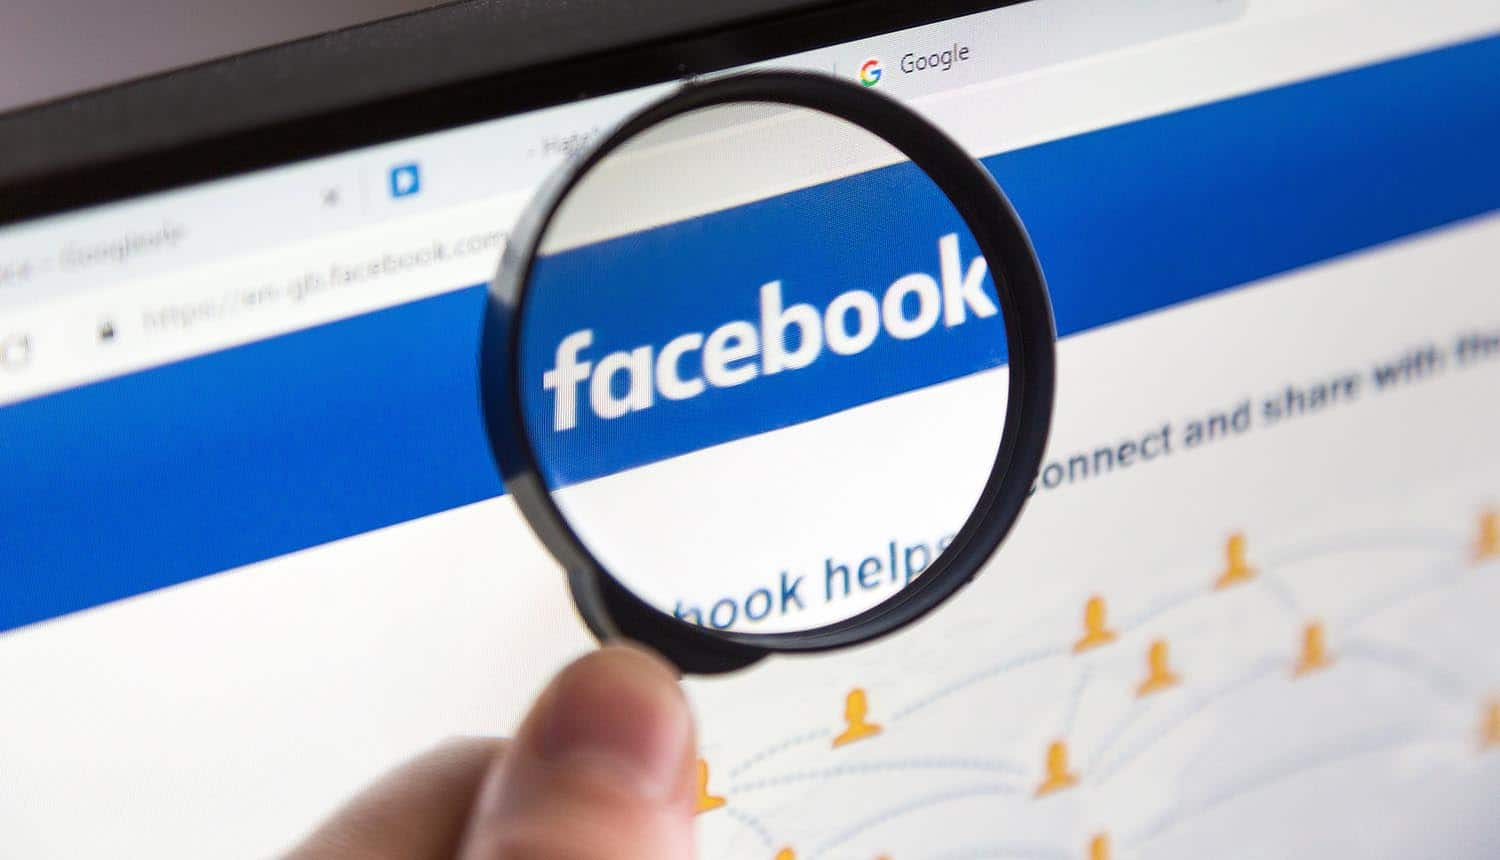 Magnifying glass over Facebook web page showing the massive app suspension from Facebook privacy investigation